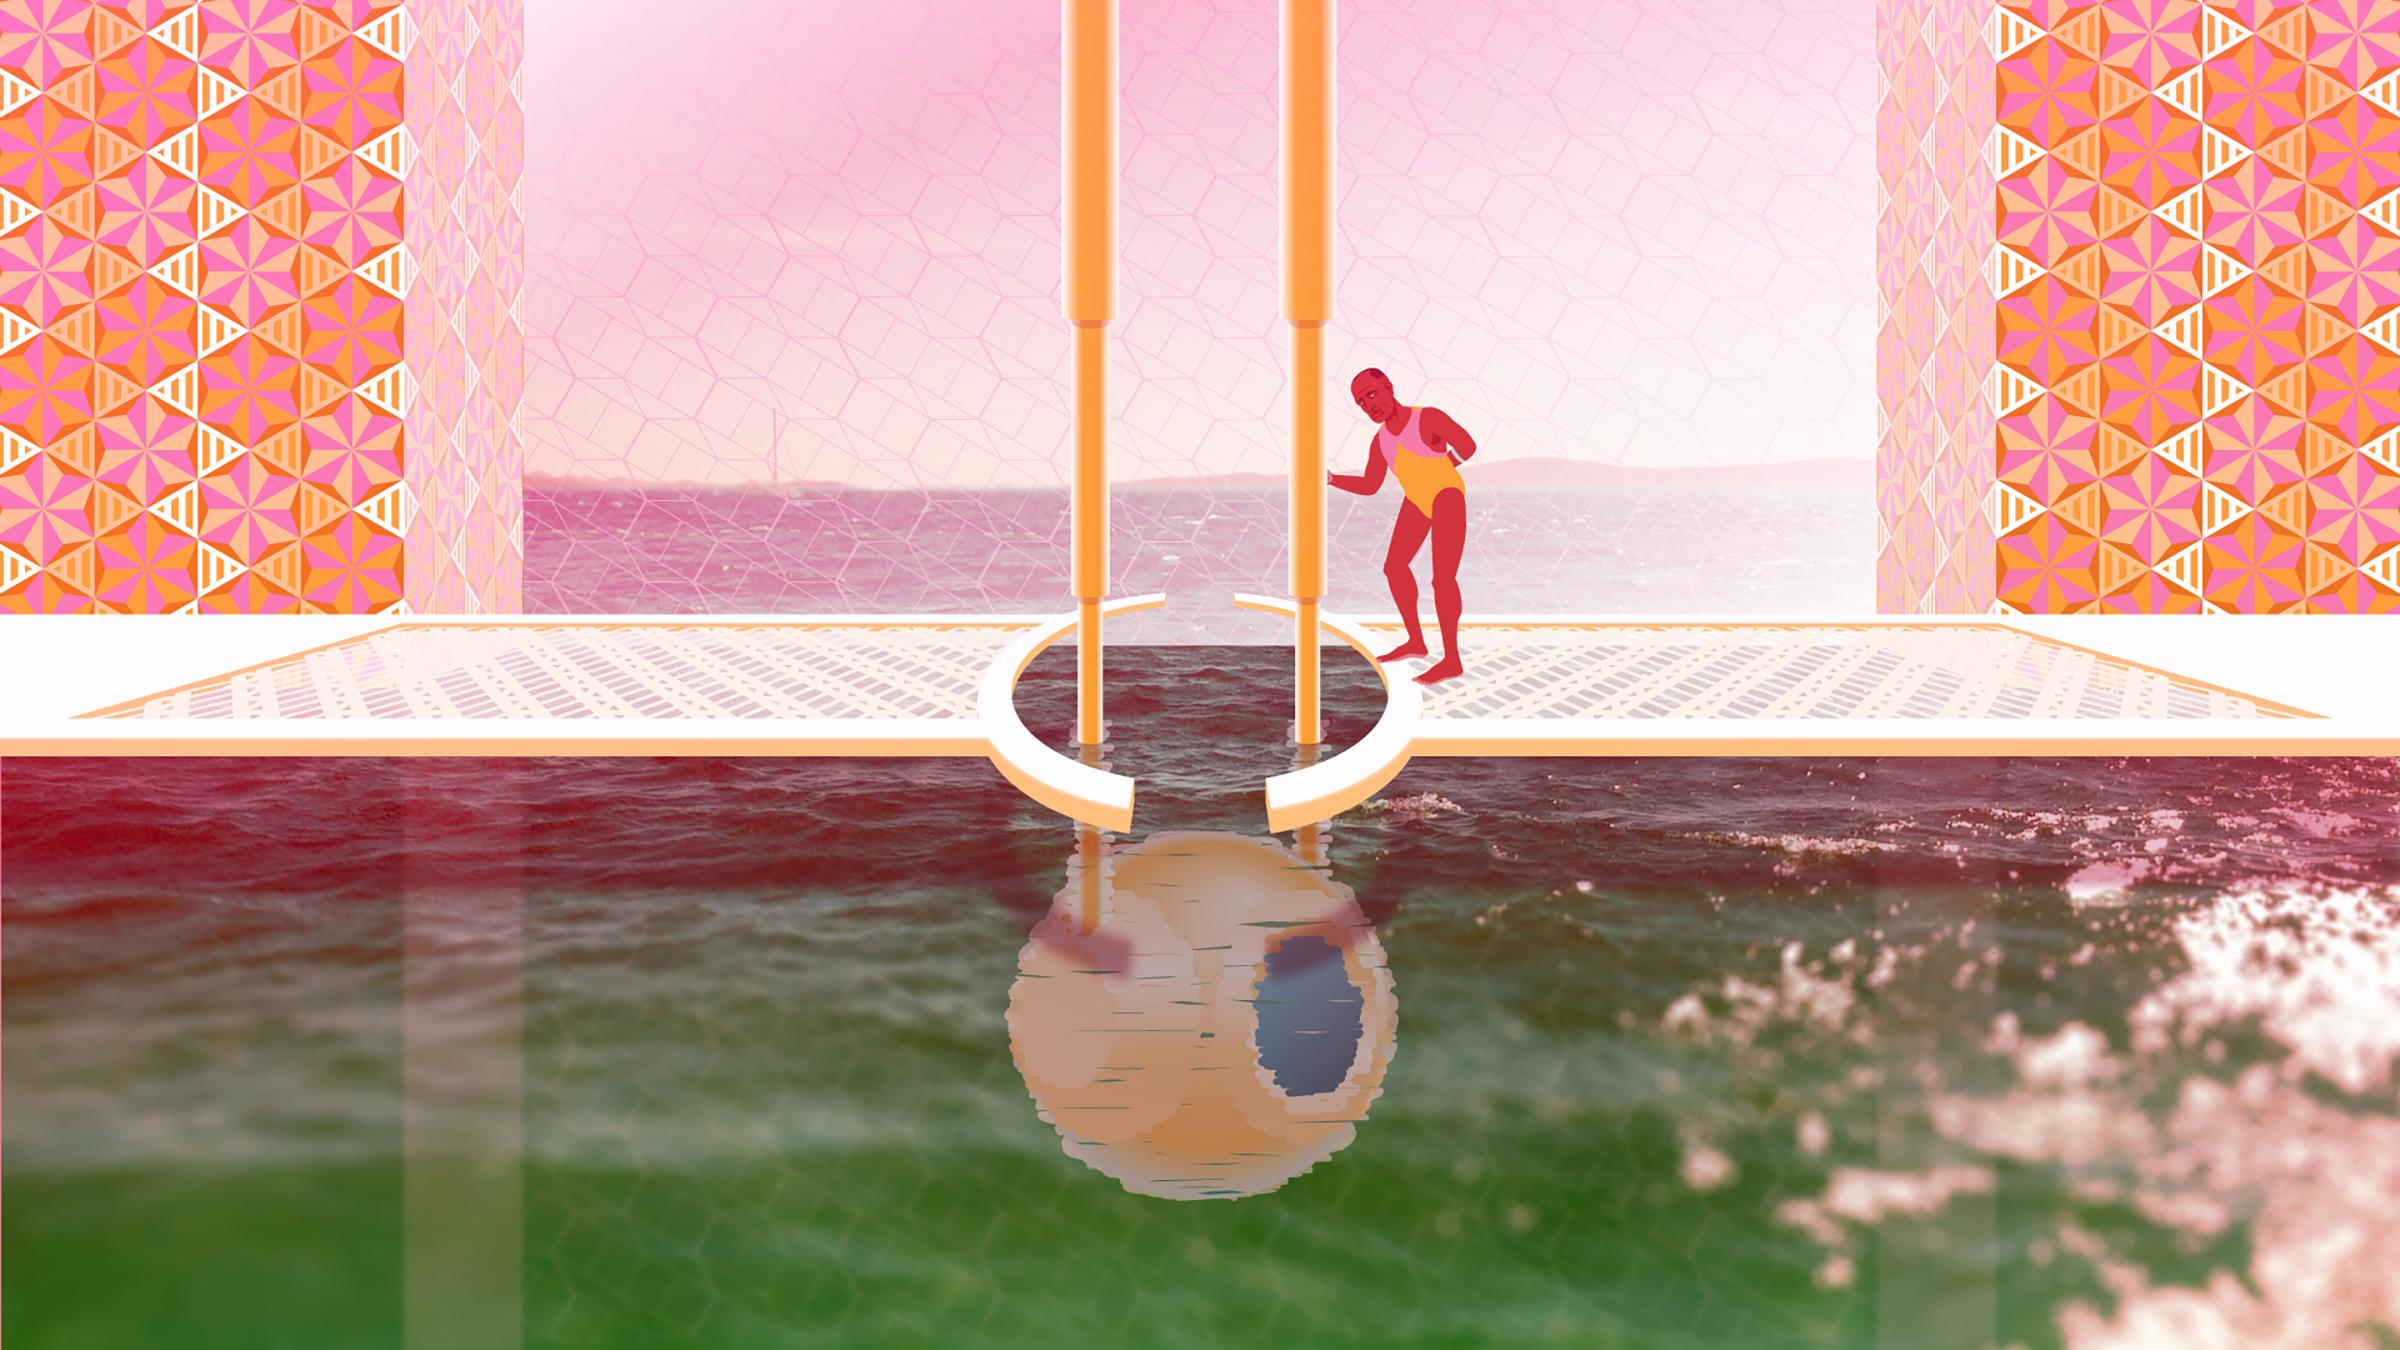 In this animation still, a swimmer gazes into a body of green water.